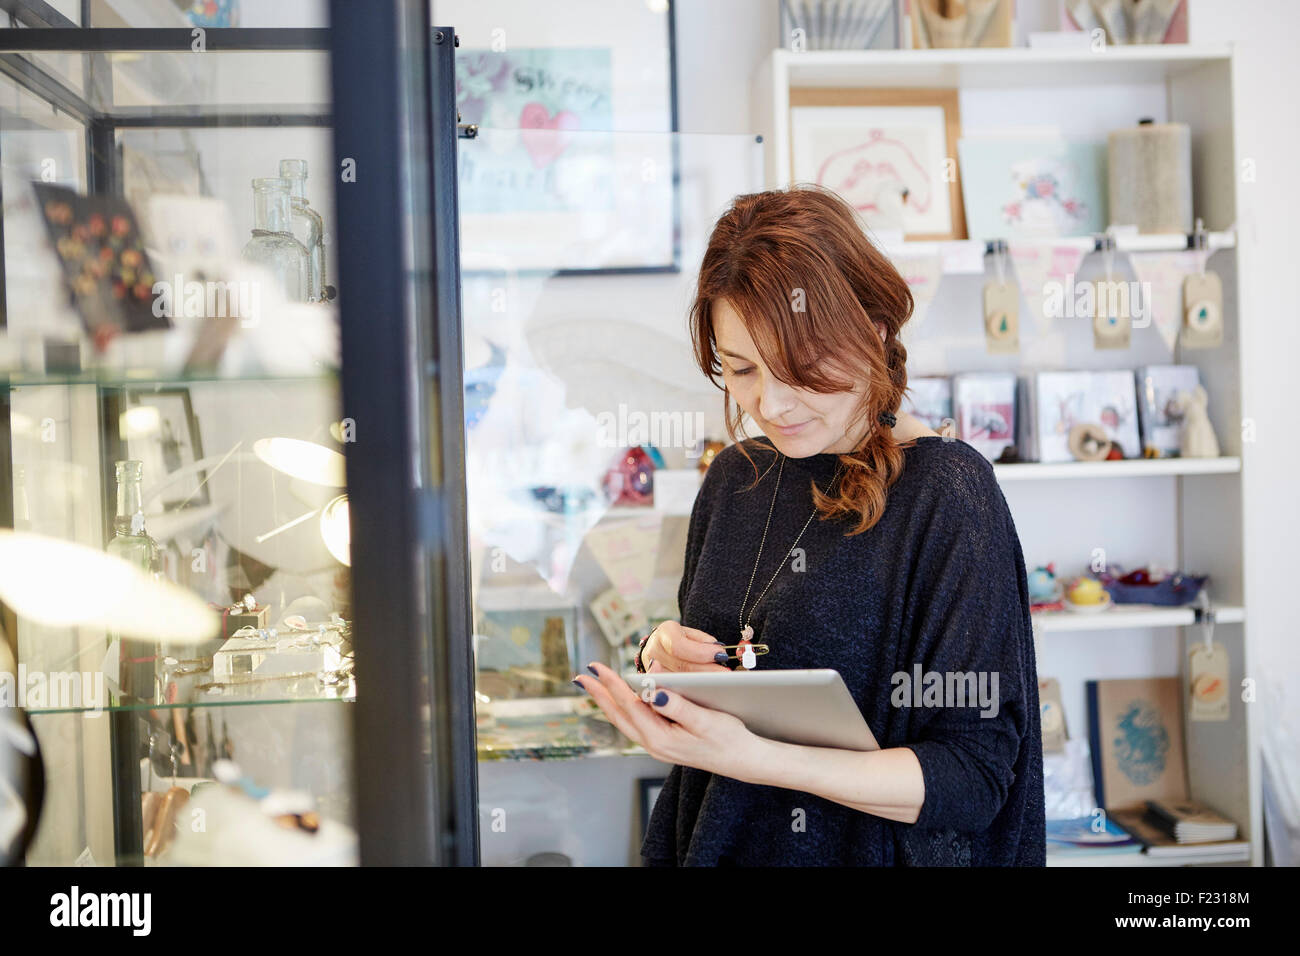 A mature woman using a digital tablet, using the touch screen, stock-taking in a small gift shop. - Stock Image